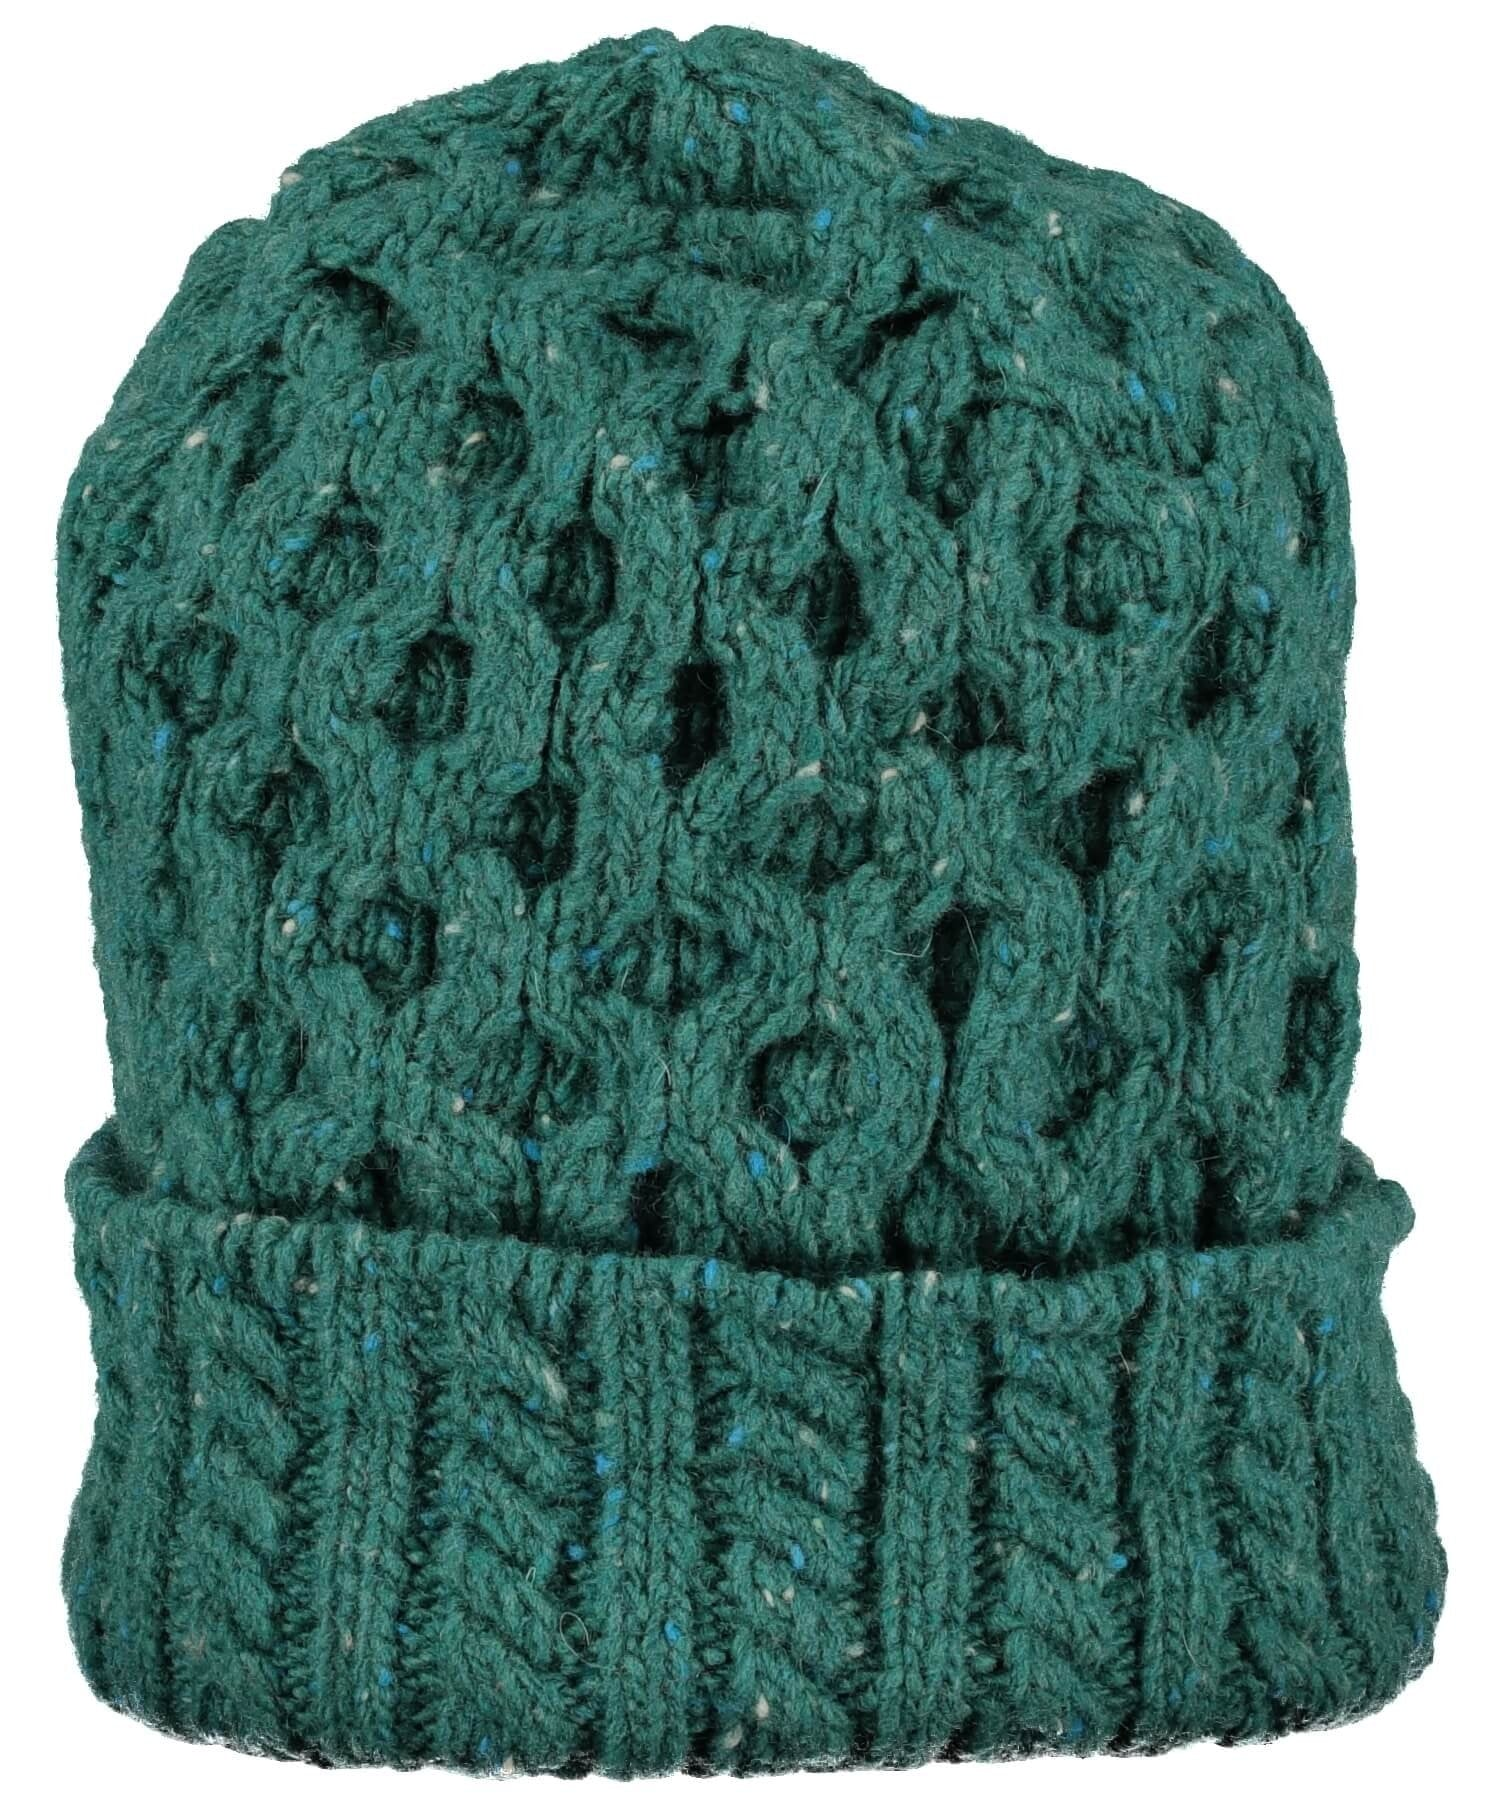 Luxe Aran Hat - Green Garden - [Irelands Eye] - Ladies Hats & Headbands - Irish Gifts